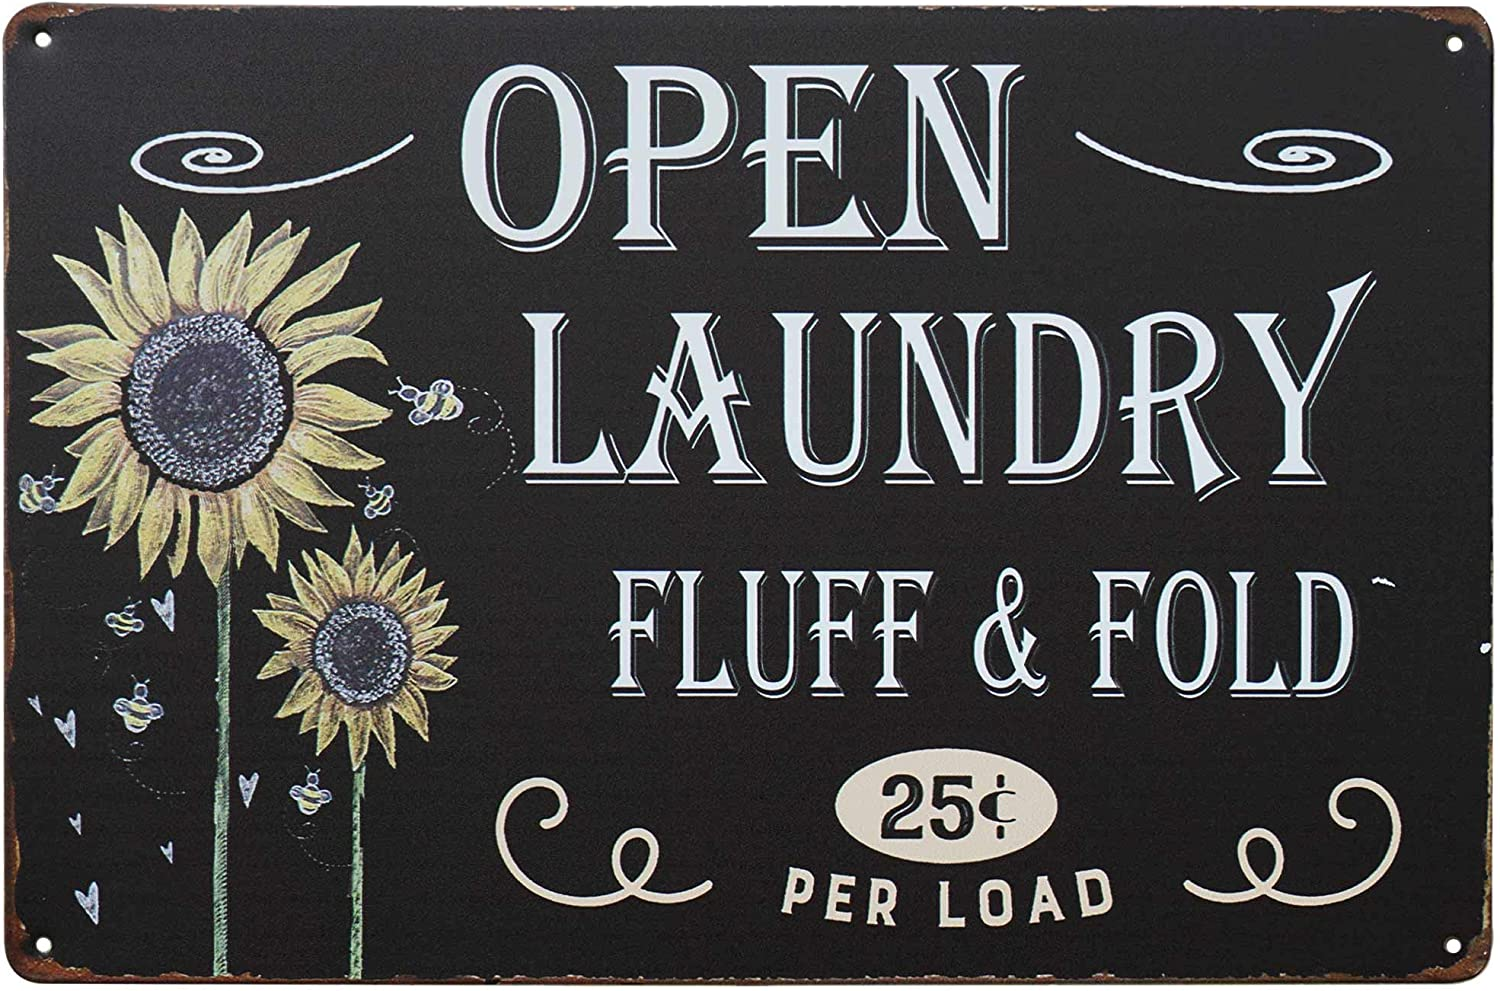 Amazon Com Pxiyou Sunflower Open Laundry Fluff Fold Vintage Farmhouse Laundry Room Sign Country Wall Decor Wash Room Signs Wall Home Decor Art Hanging Signs 8x12inch Home Kitchen